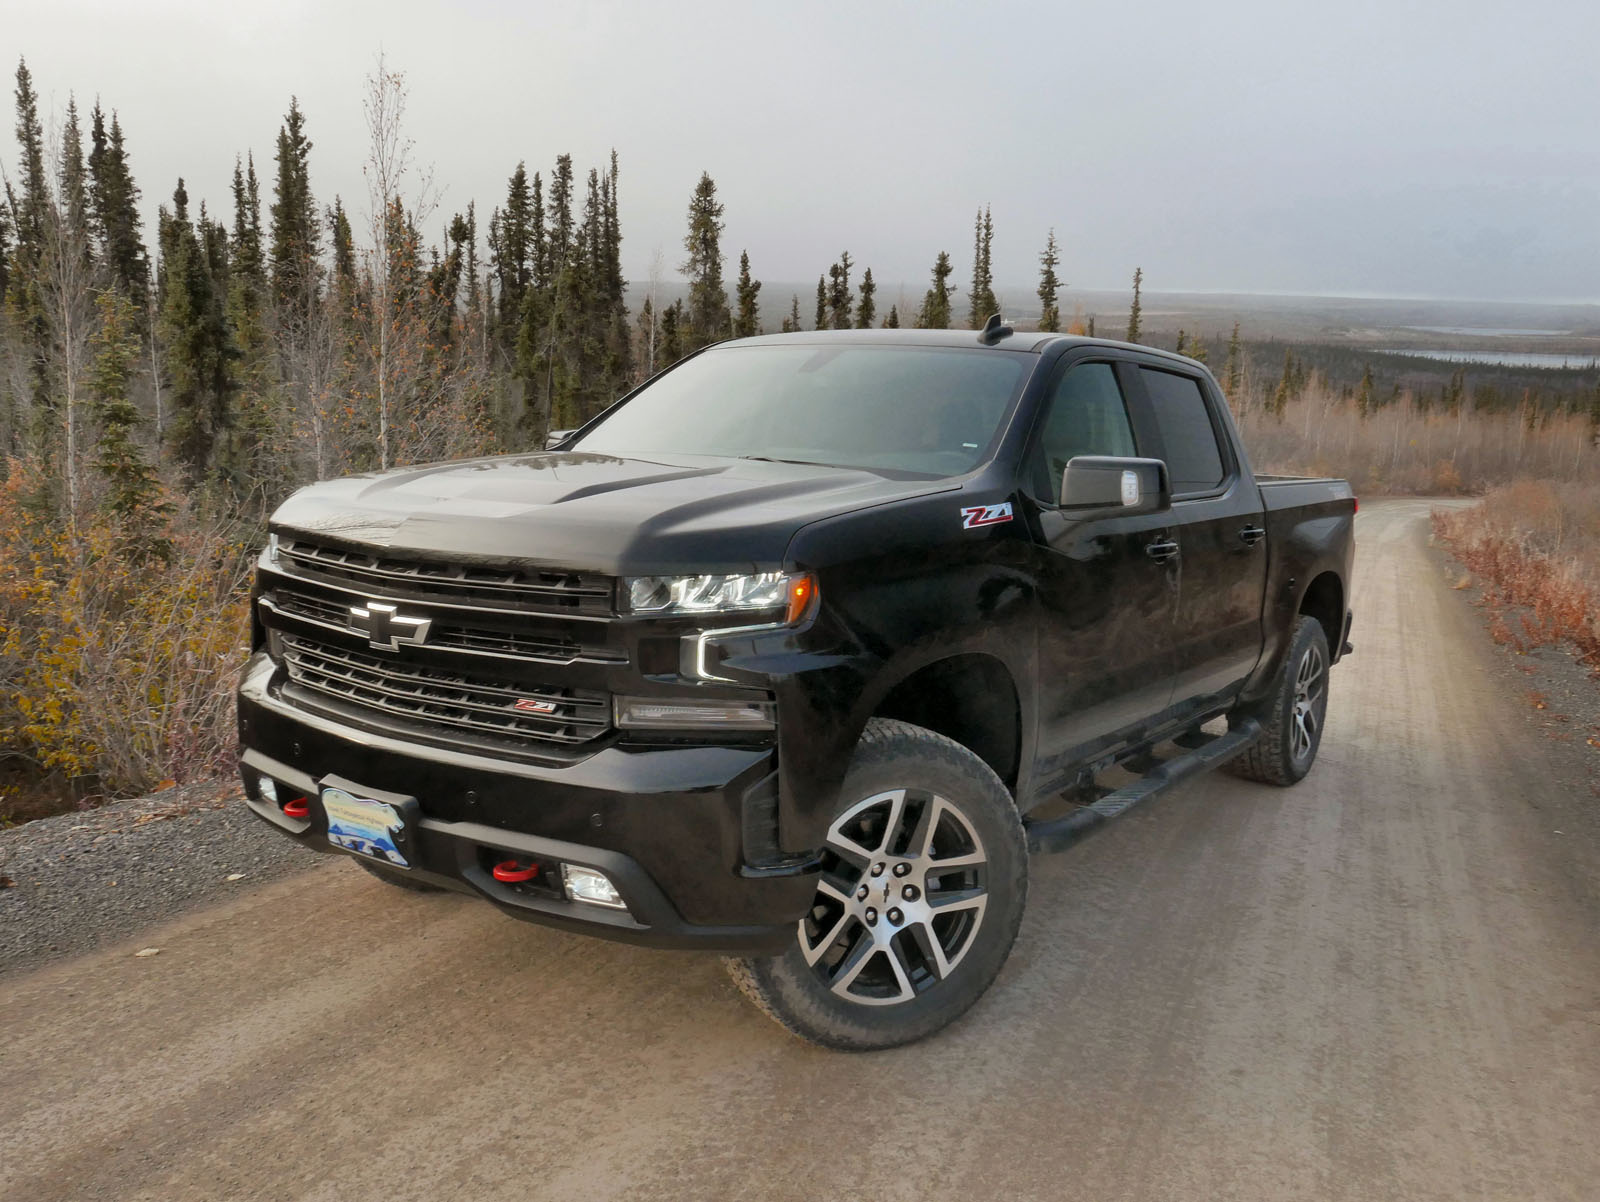 2019 chevrolet silverado reviewed in the arctic. Black Bedroom Furniture Sets. Home Design Ideas